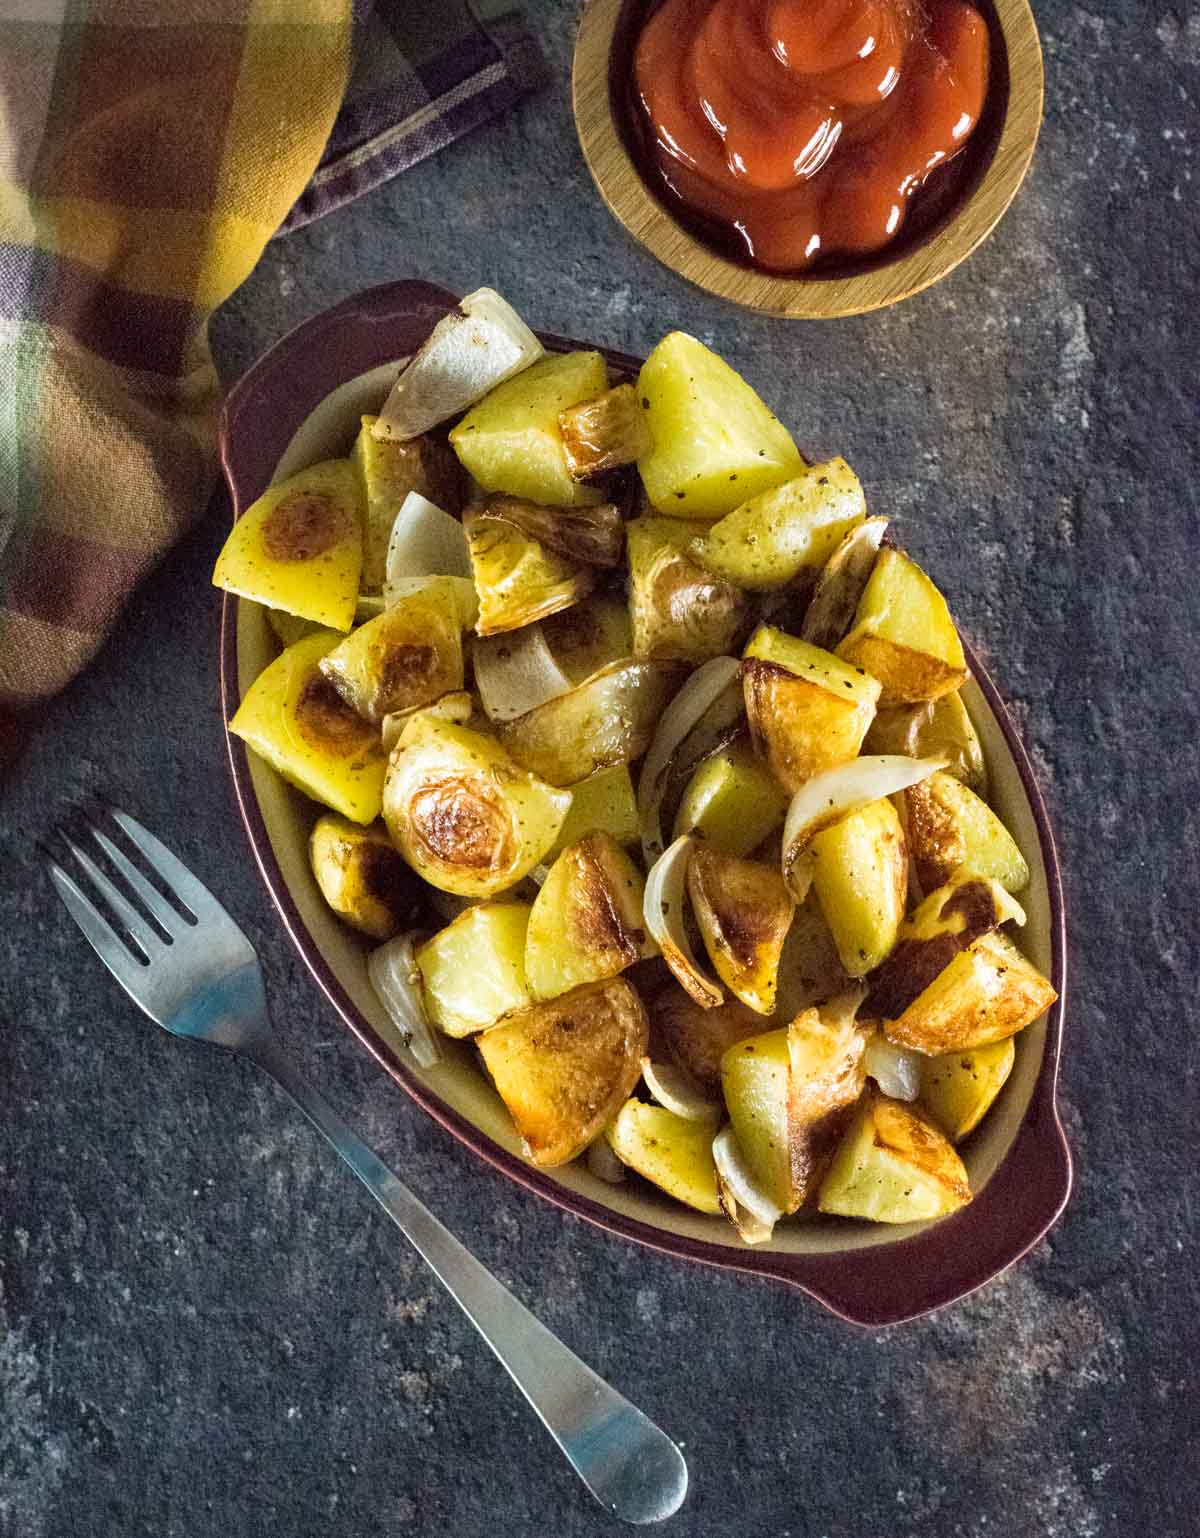 Roasted potatoes and onions shown from above with fork and kitchen towel alongside.